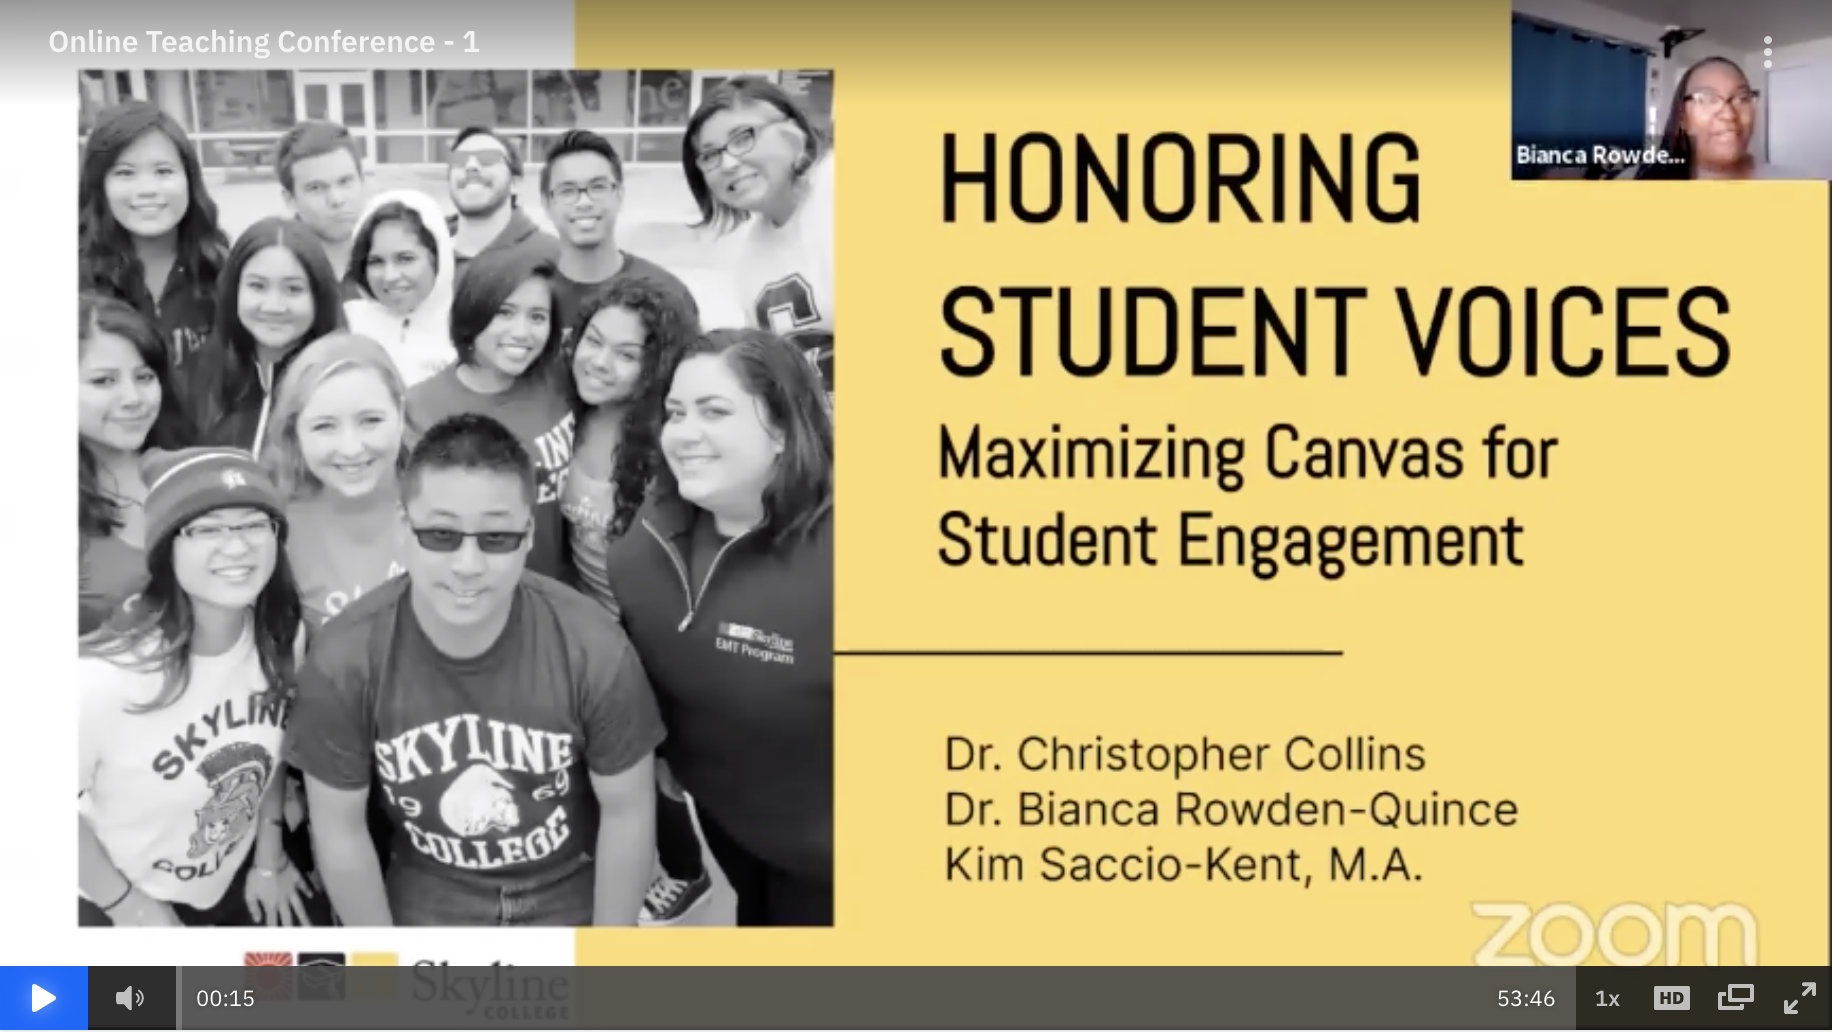 Honoring Student Voices